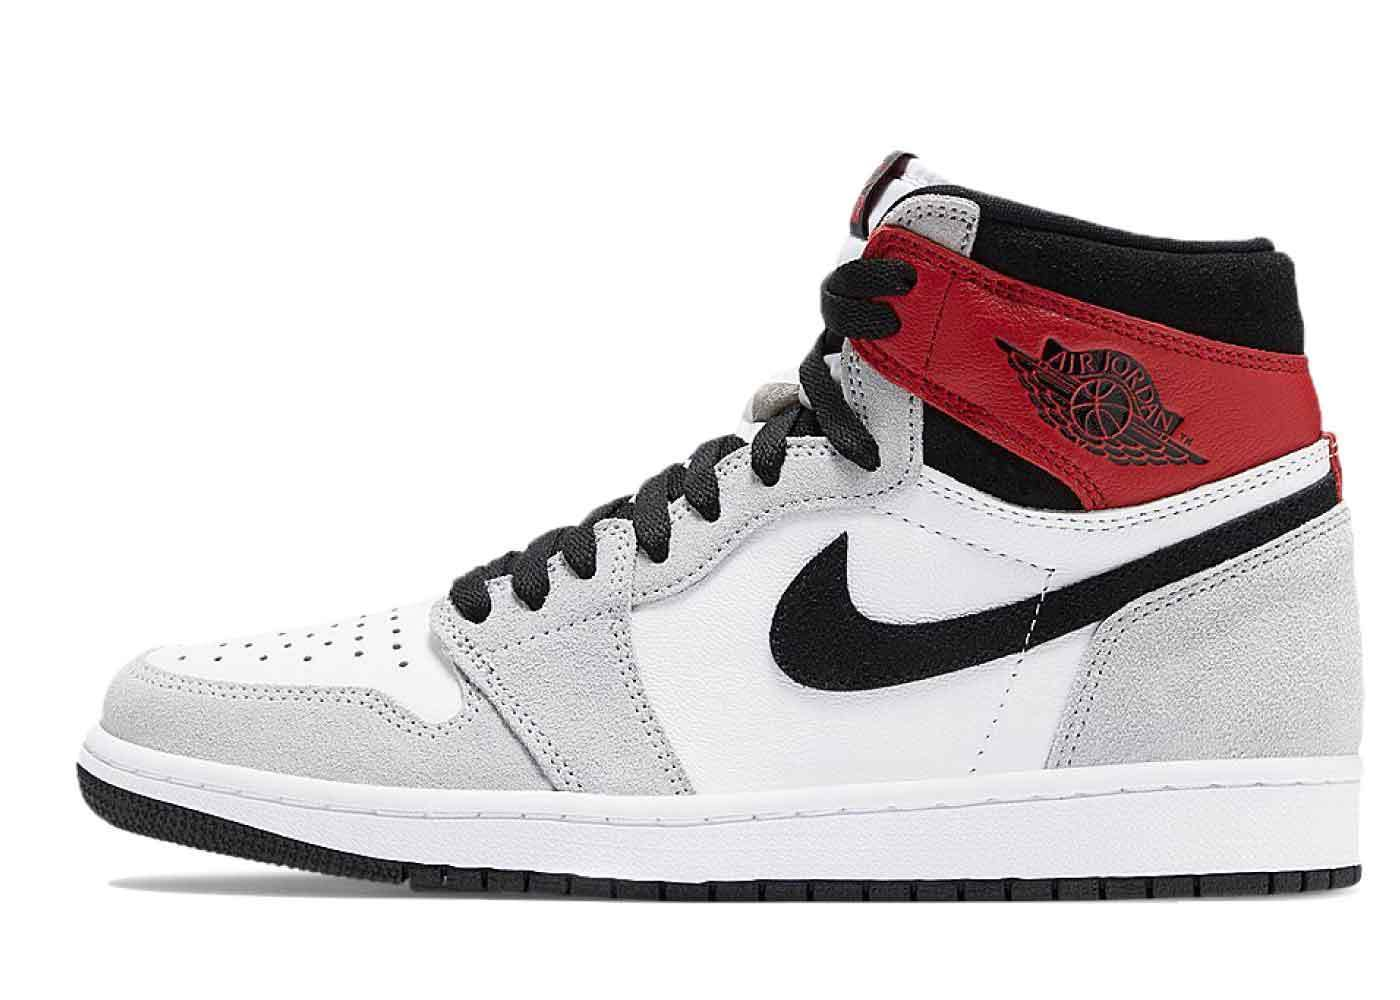 Nike Air Jordan 1 Retro High OG Light Smoke Greyの写真